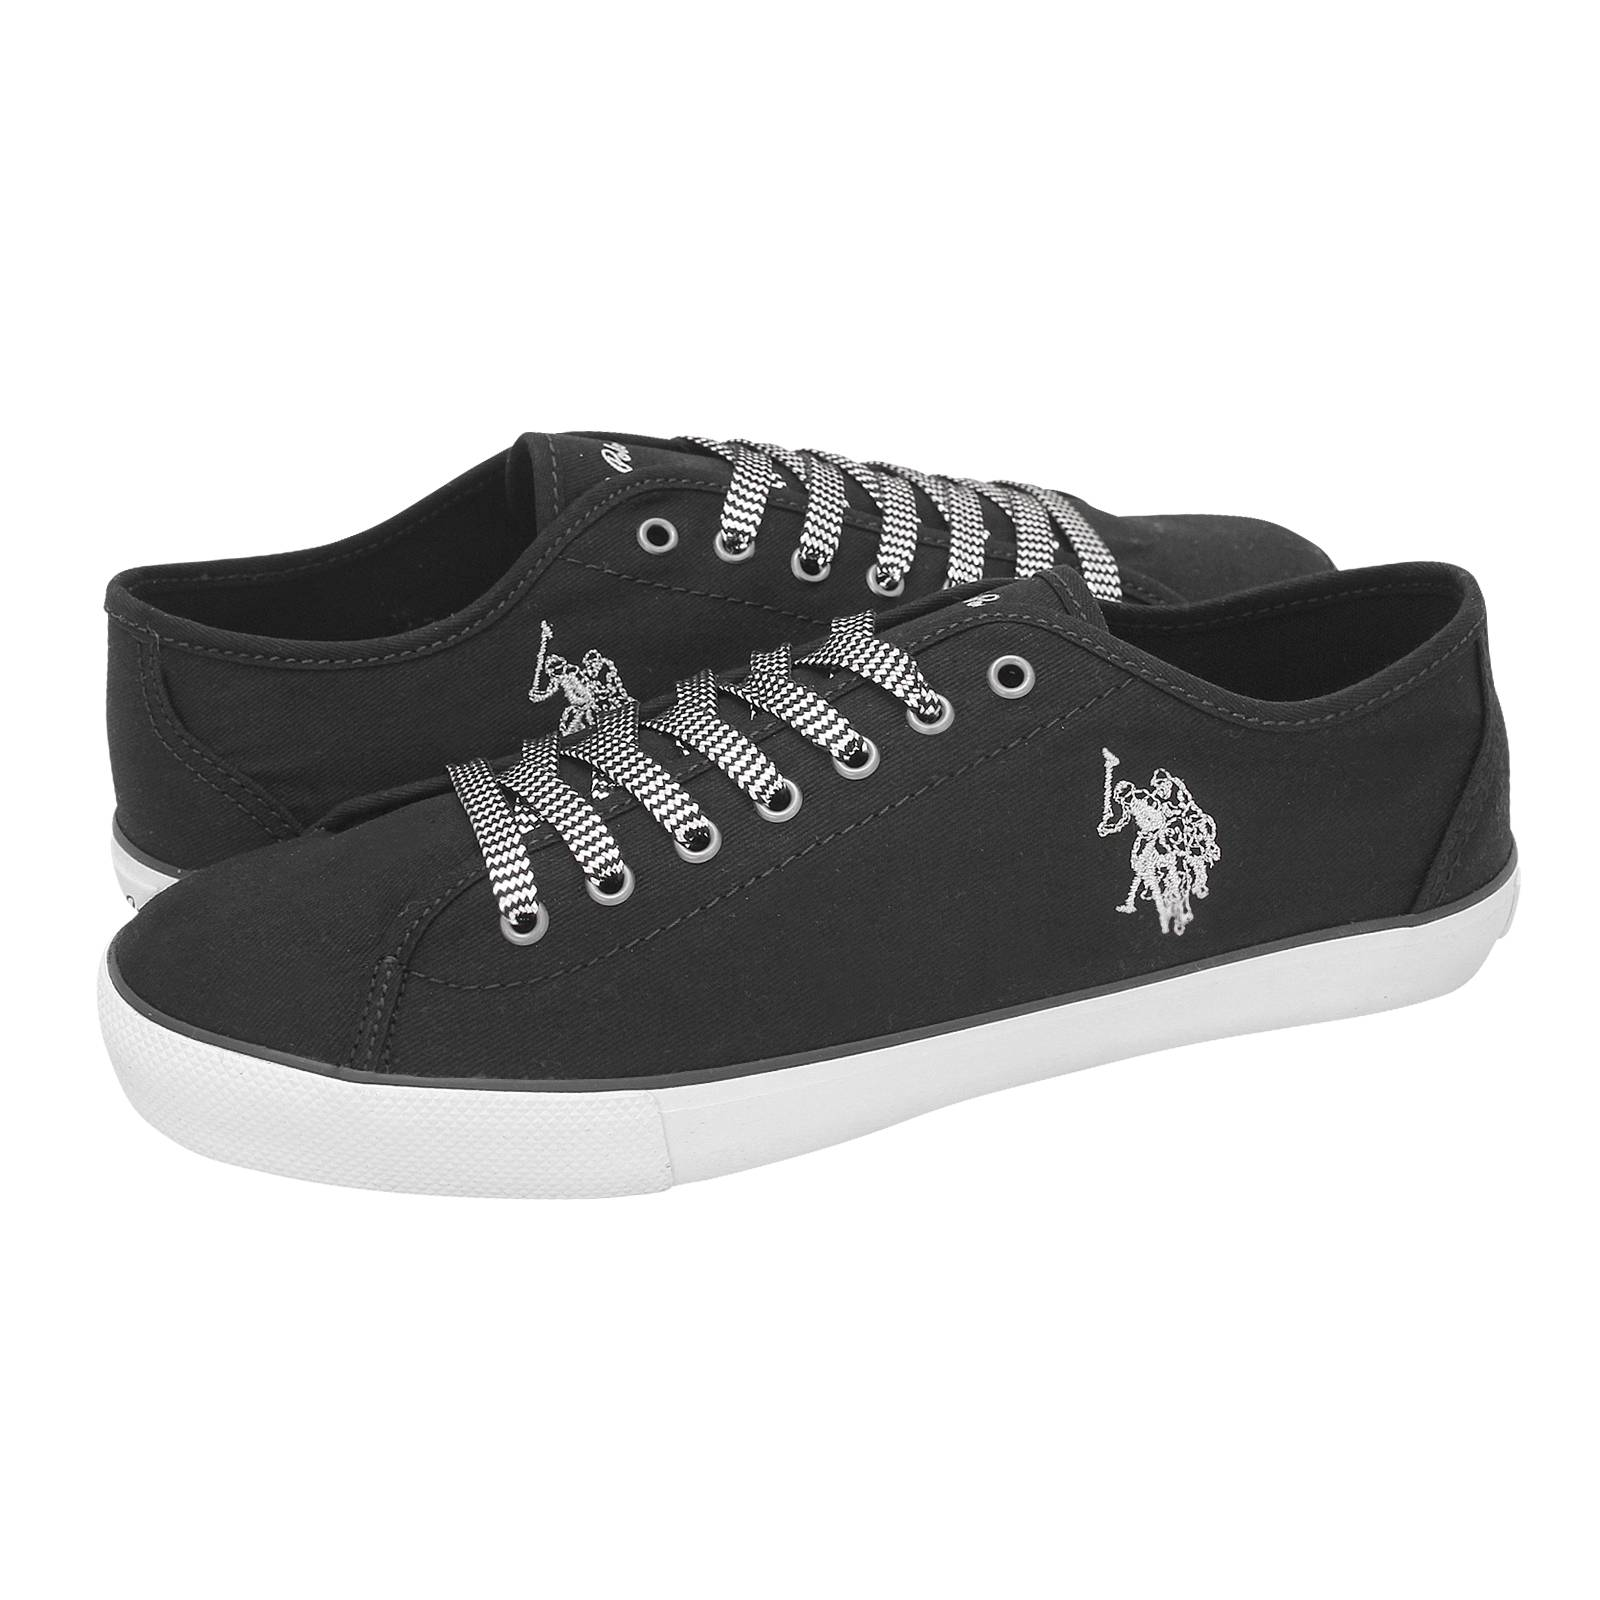 e230db551c7 Terry Canvas - U.S. Polo ASSN Women's casual shoes made of fabric ...